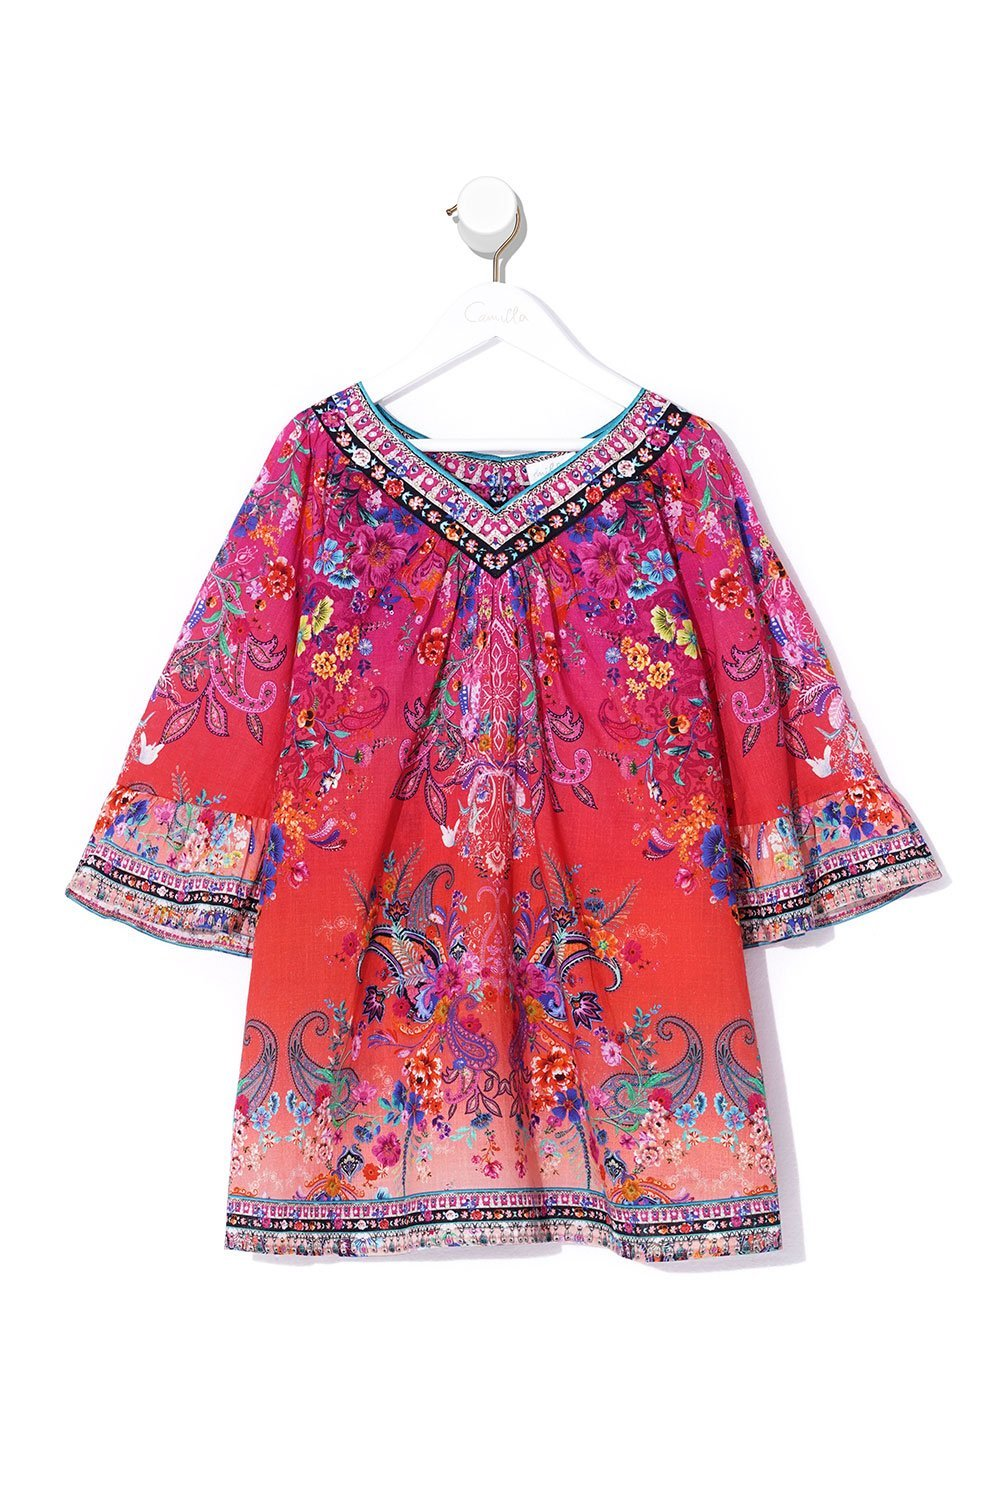 KIDS YOKE TOP DRESS FREE LOVE